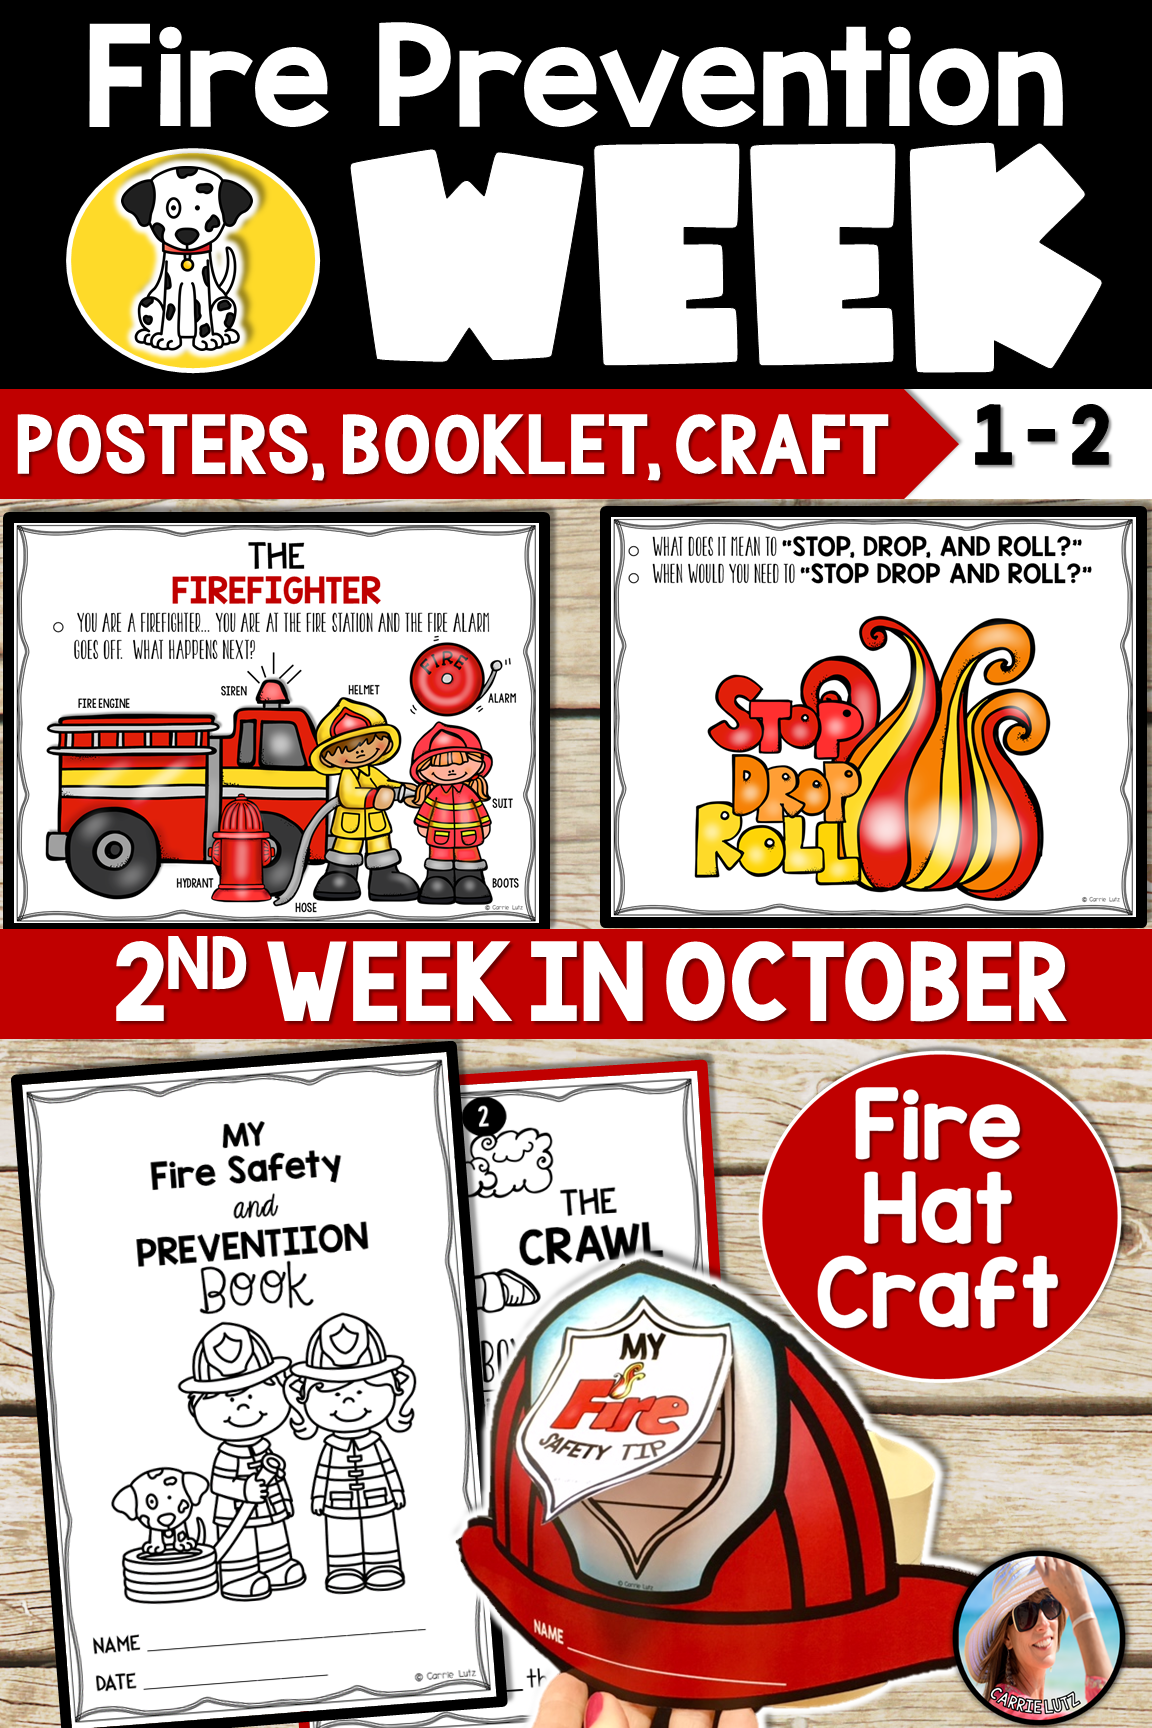 The 2nd Week in October is Fire Prevention Month. You will